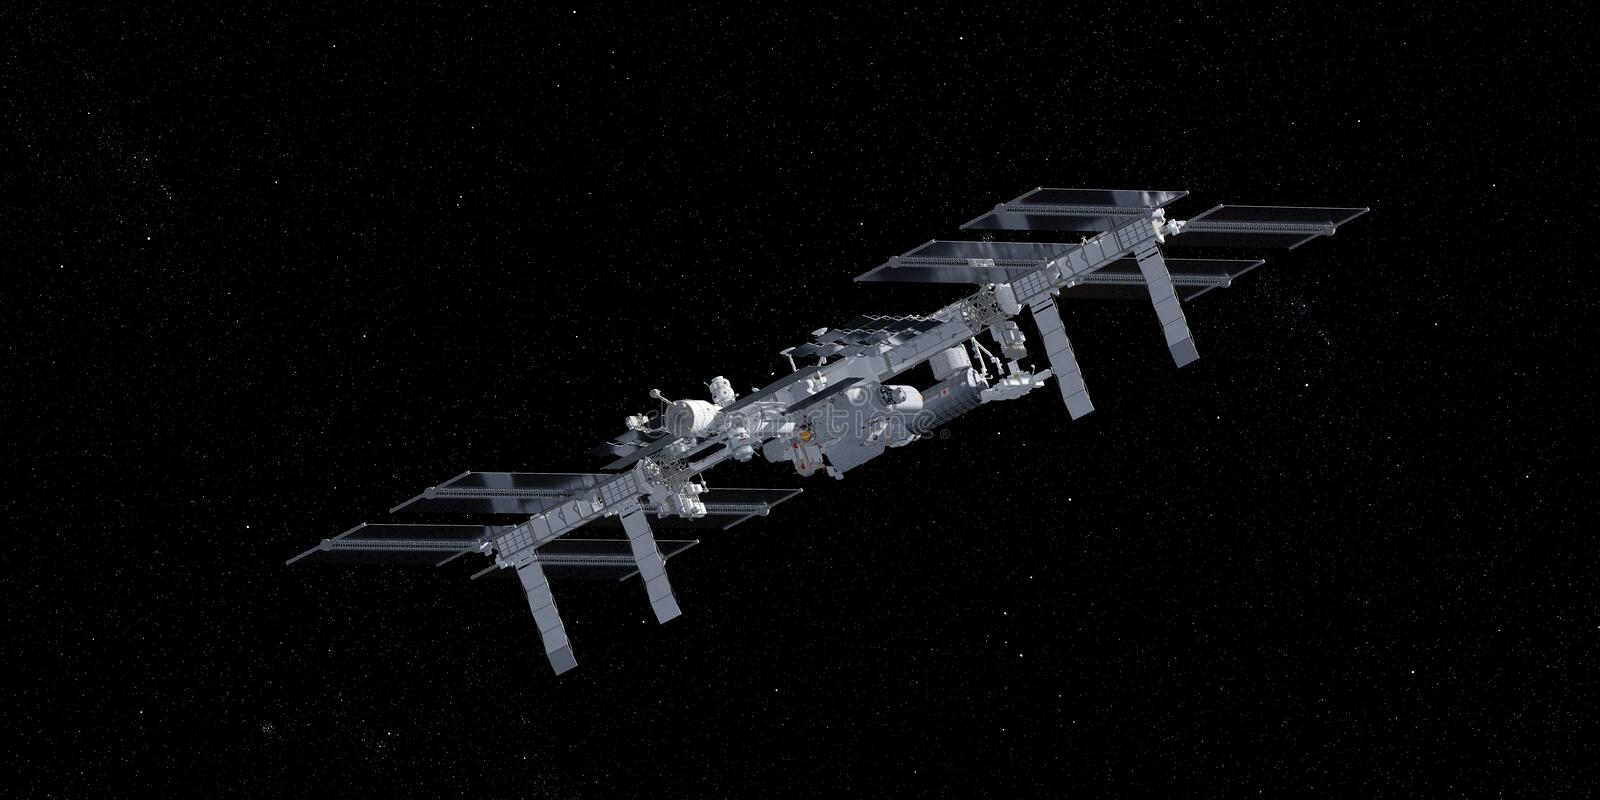 The ISS vector illustration